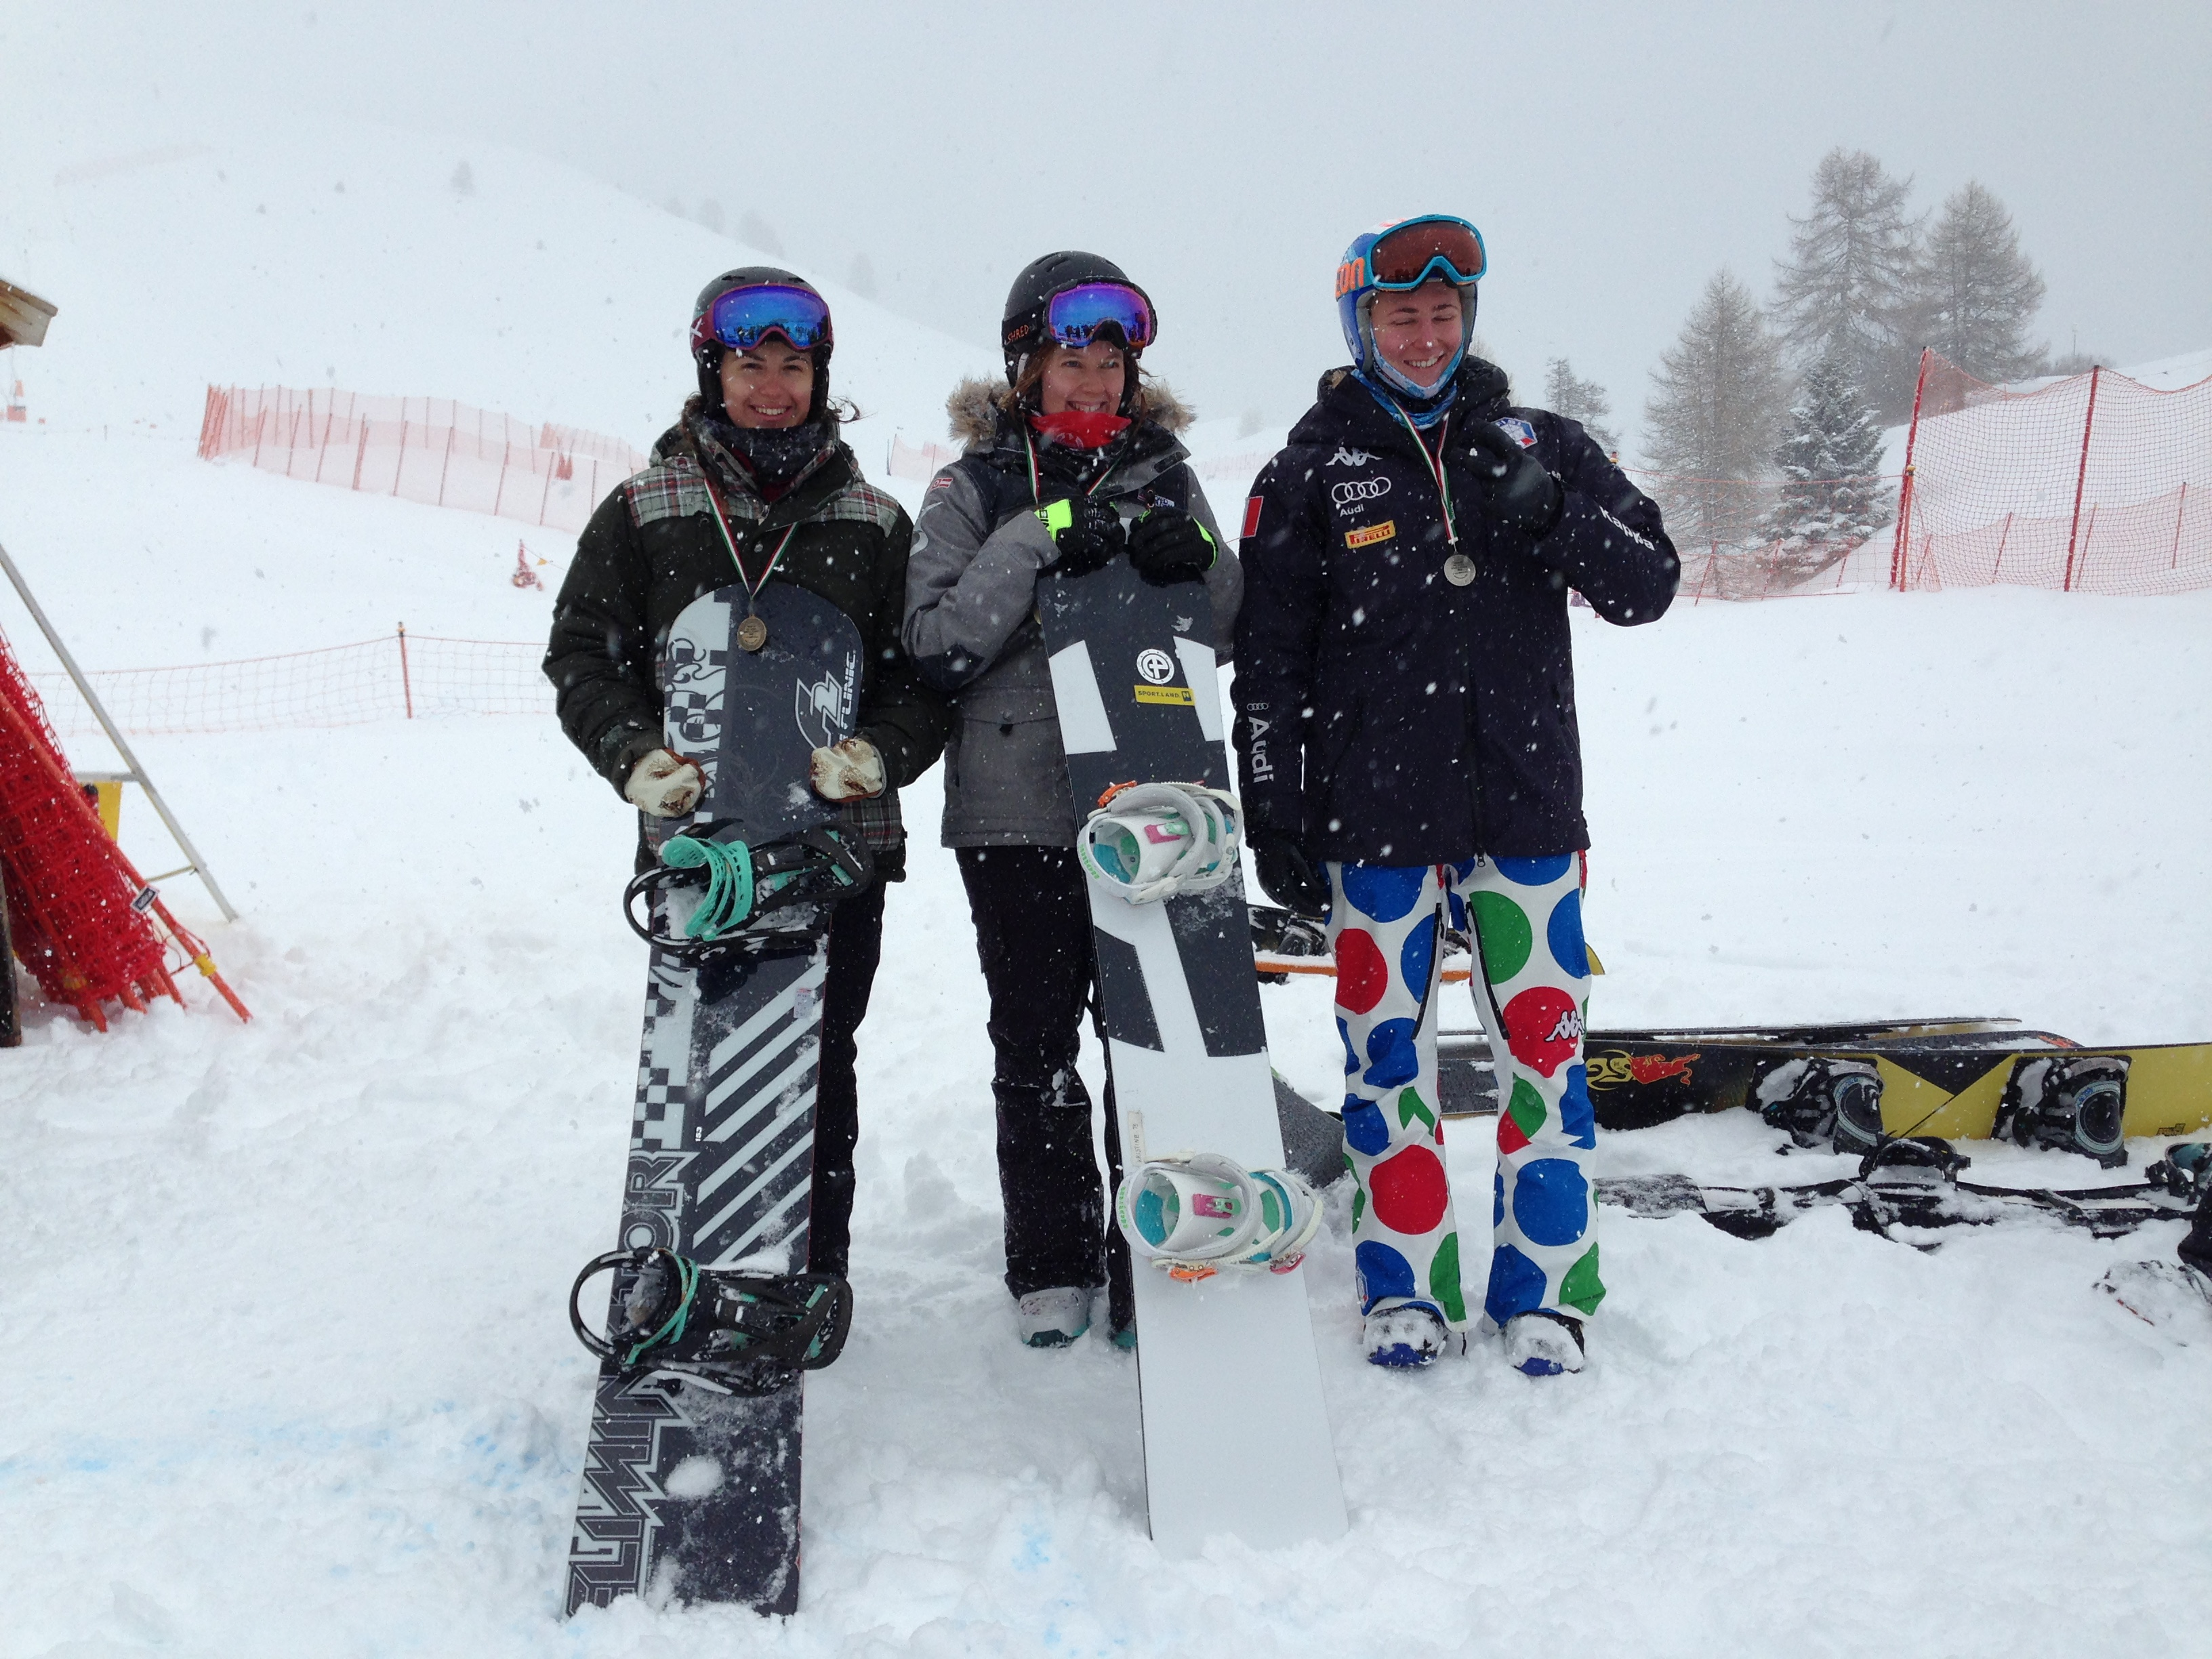 3rd FIS in Moena, Italy